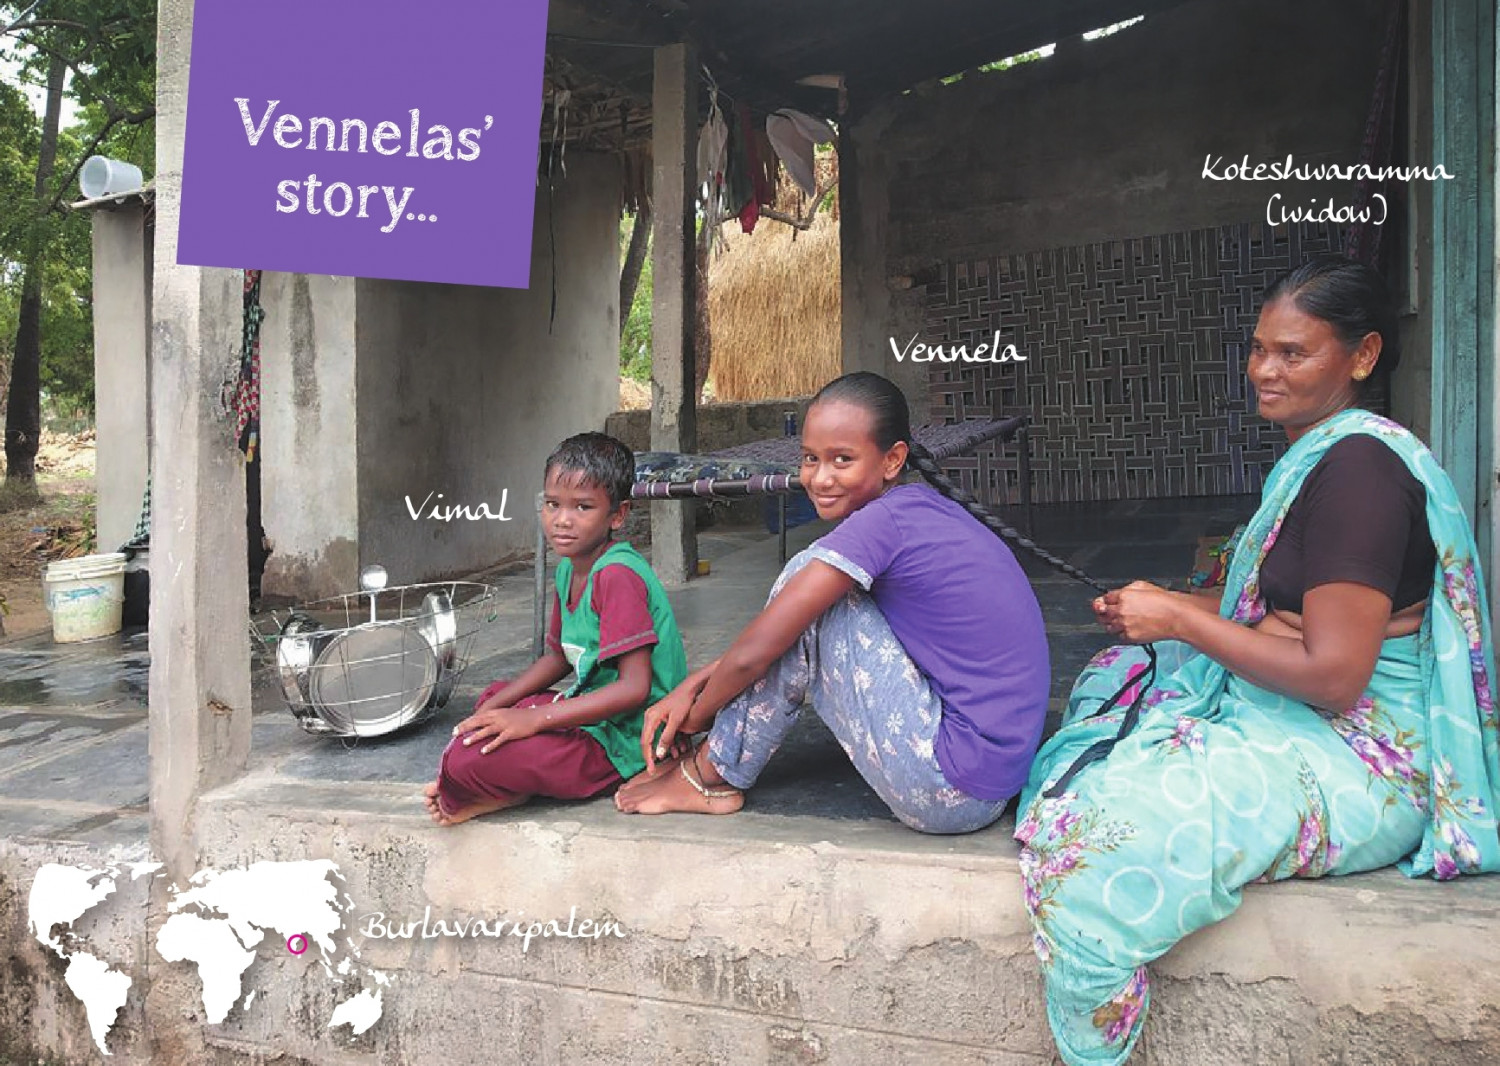 Venella and her family